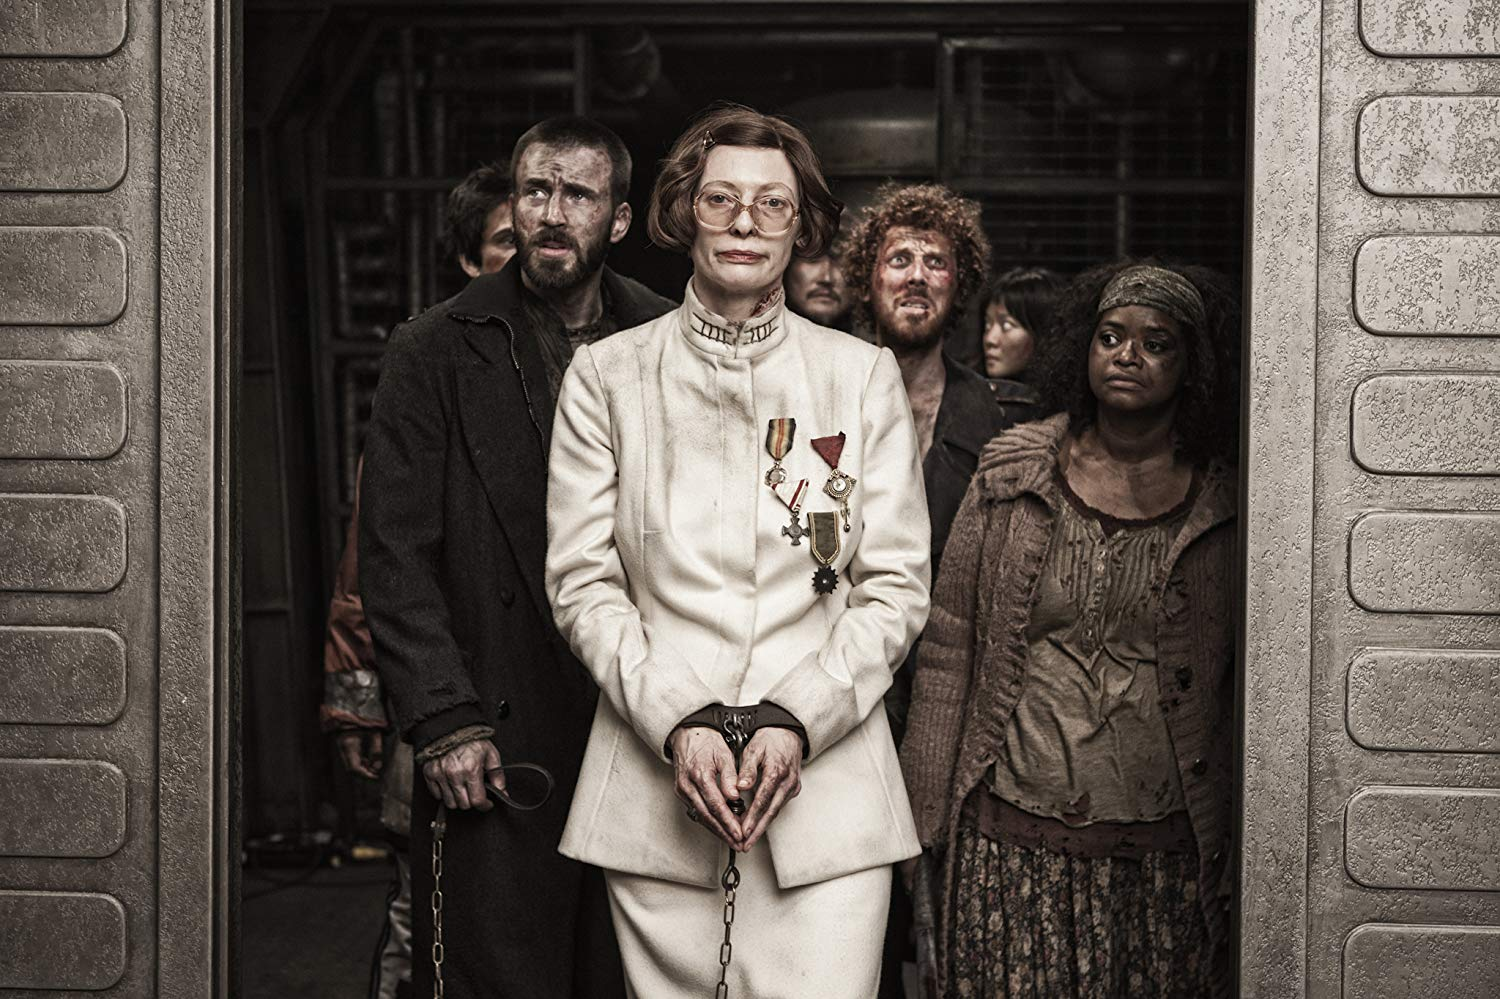 The revolutionaries - Chris Evans, Ewen Bremner, Ko Asung and Octavia Spencer - head to the forward compartments with an imprisoned Minister Mason (Tilda Swinton) in Snowpiercer (2013)